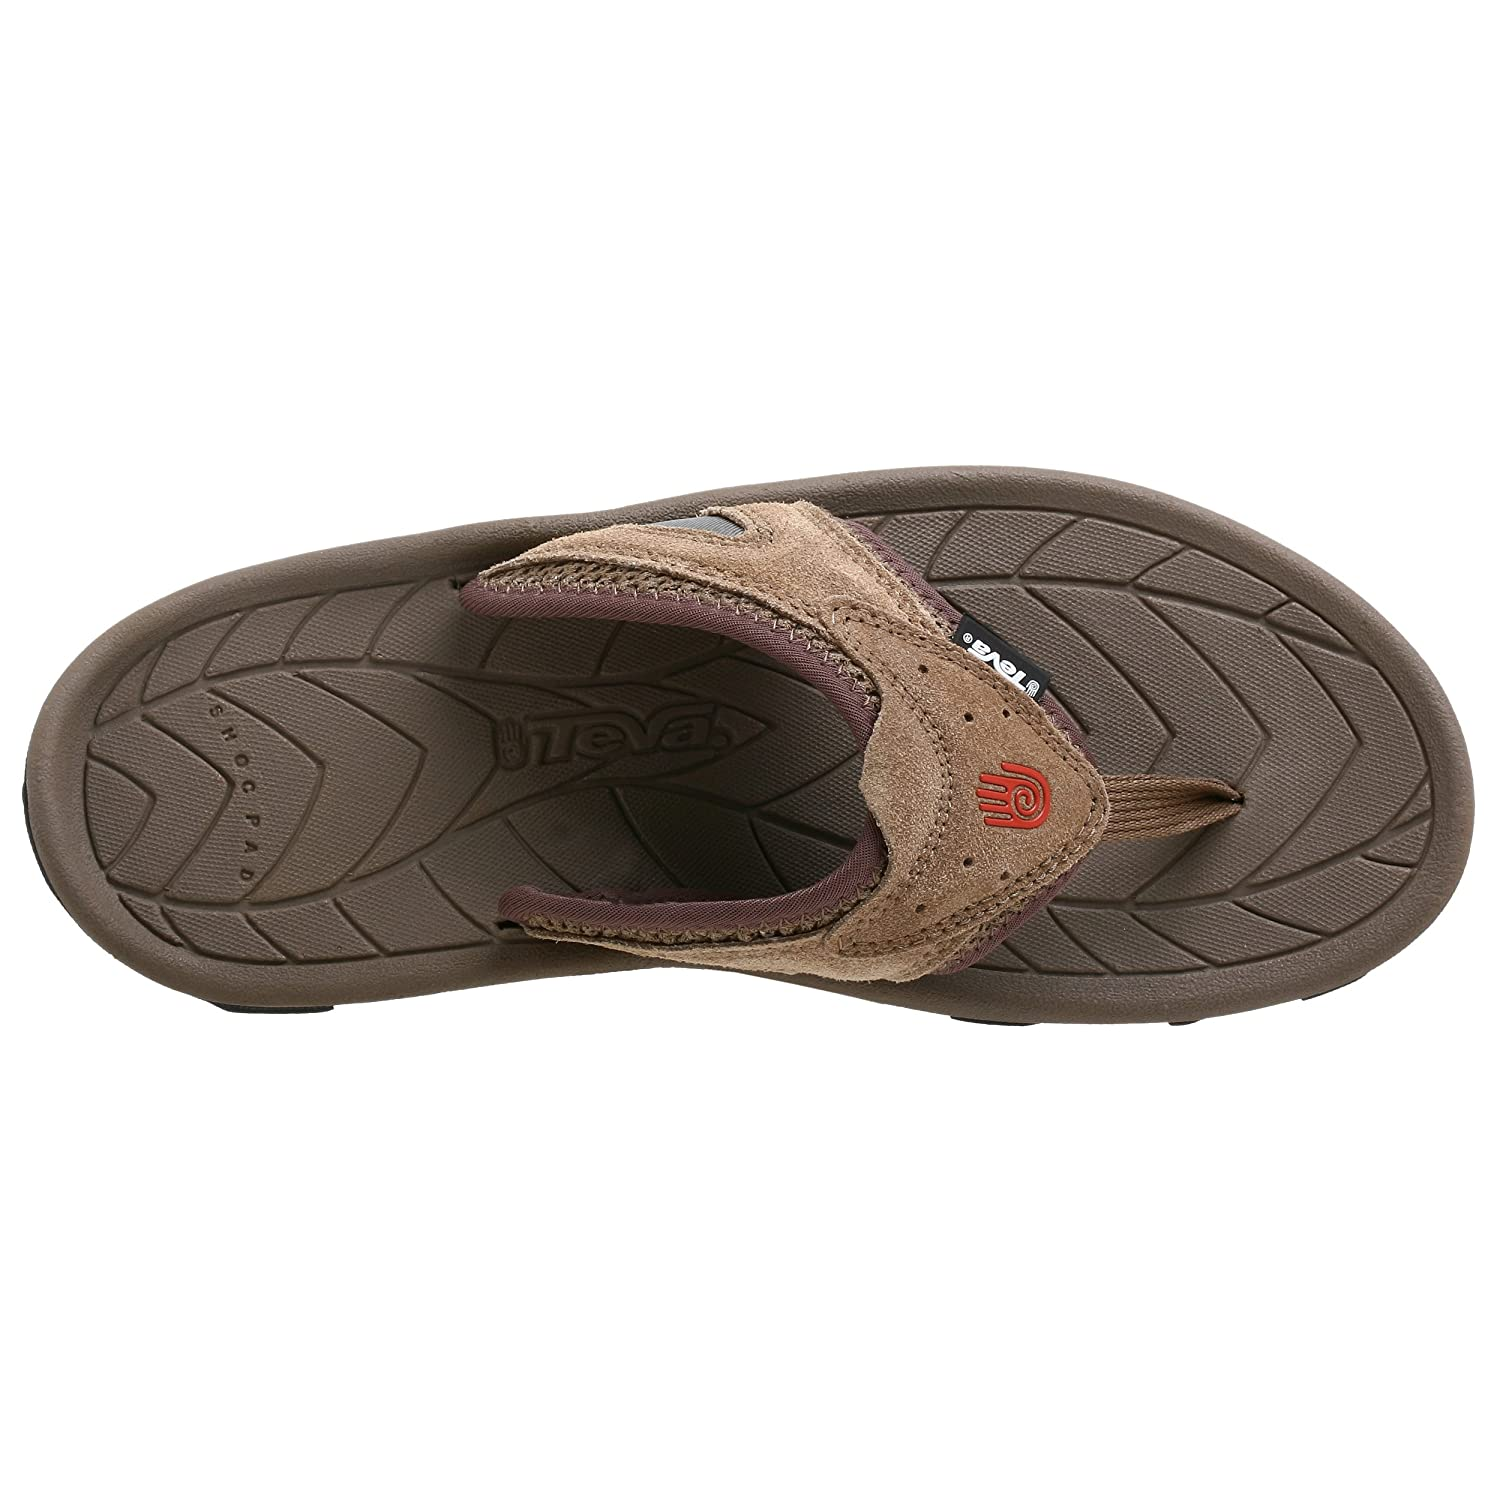 a926cd736 Teva Men s Elixer 5 Sandal